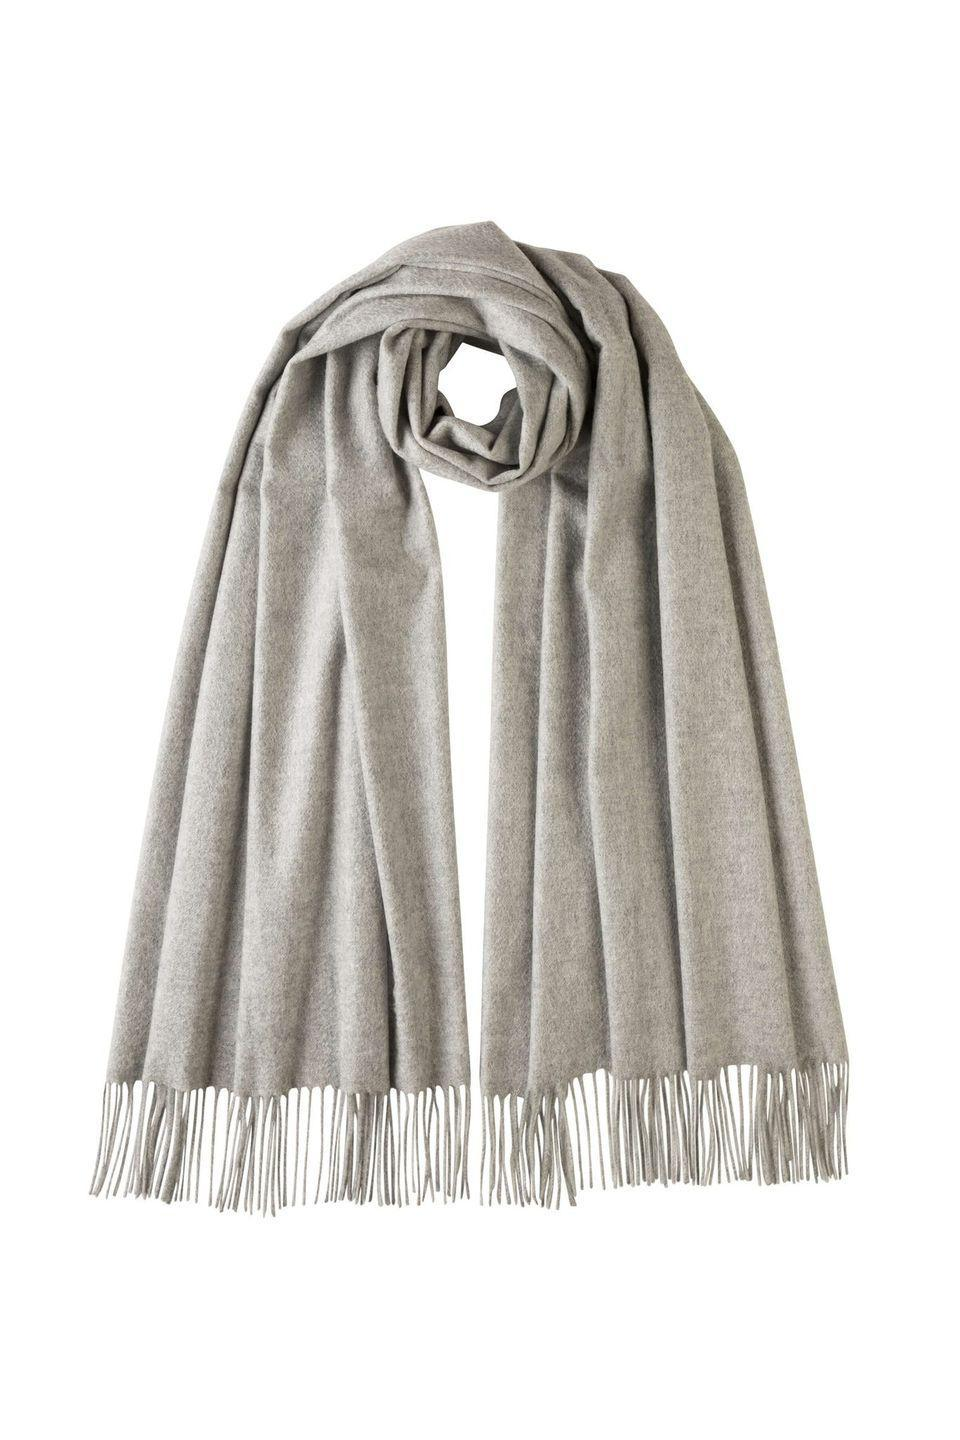 """<p><a class=""""link rapid-noclick-resp"""" href=""""https://www.johnstonsofelgin.com/retail/classic-vermillion-orange-cashmere-stole.html"""" rel=""""nofollow noopener"""" target=""""_blank"""" data-ylk=""""slk:Shop Now"""">Shop Now</a></p><p>Famed for its cashmere collections, you can't get more classic than a Johnson's of Elgin stole – you'll wear it for a lifetime.</p><p>Classic cashmere stole in vermillion orange, £399, <a href=""""https://www.johnstonsofelgin.com/retail/classic-vermillion-orange-cashmere-stole.html"""" rel=""""nofollow noopener"""" target=""""_blank"""" data-ylk=""""slk:Johnson's of Elgin"""" class=""""link rapid-noclick-resp"""">Johnson's of Elgin</a></p>"""